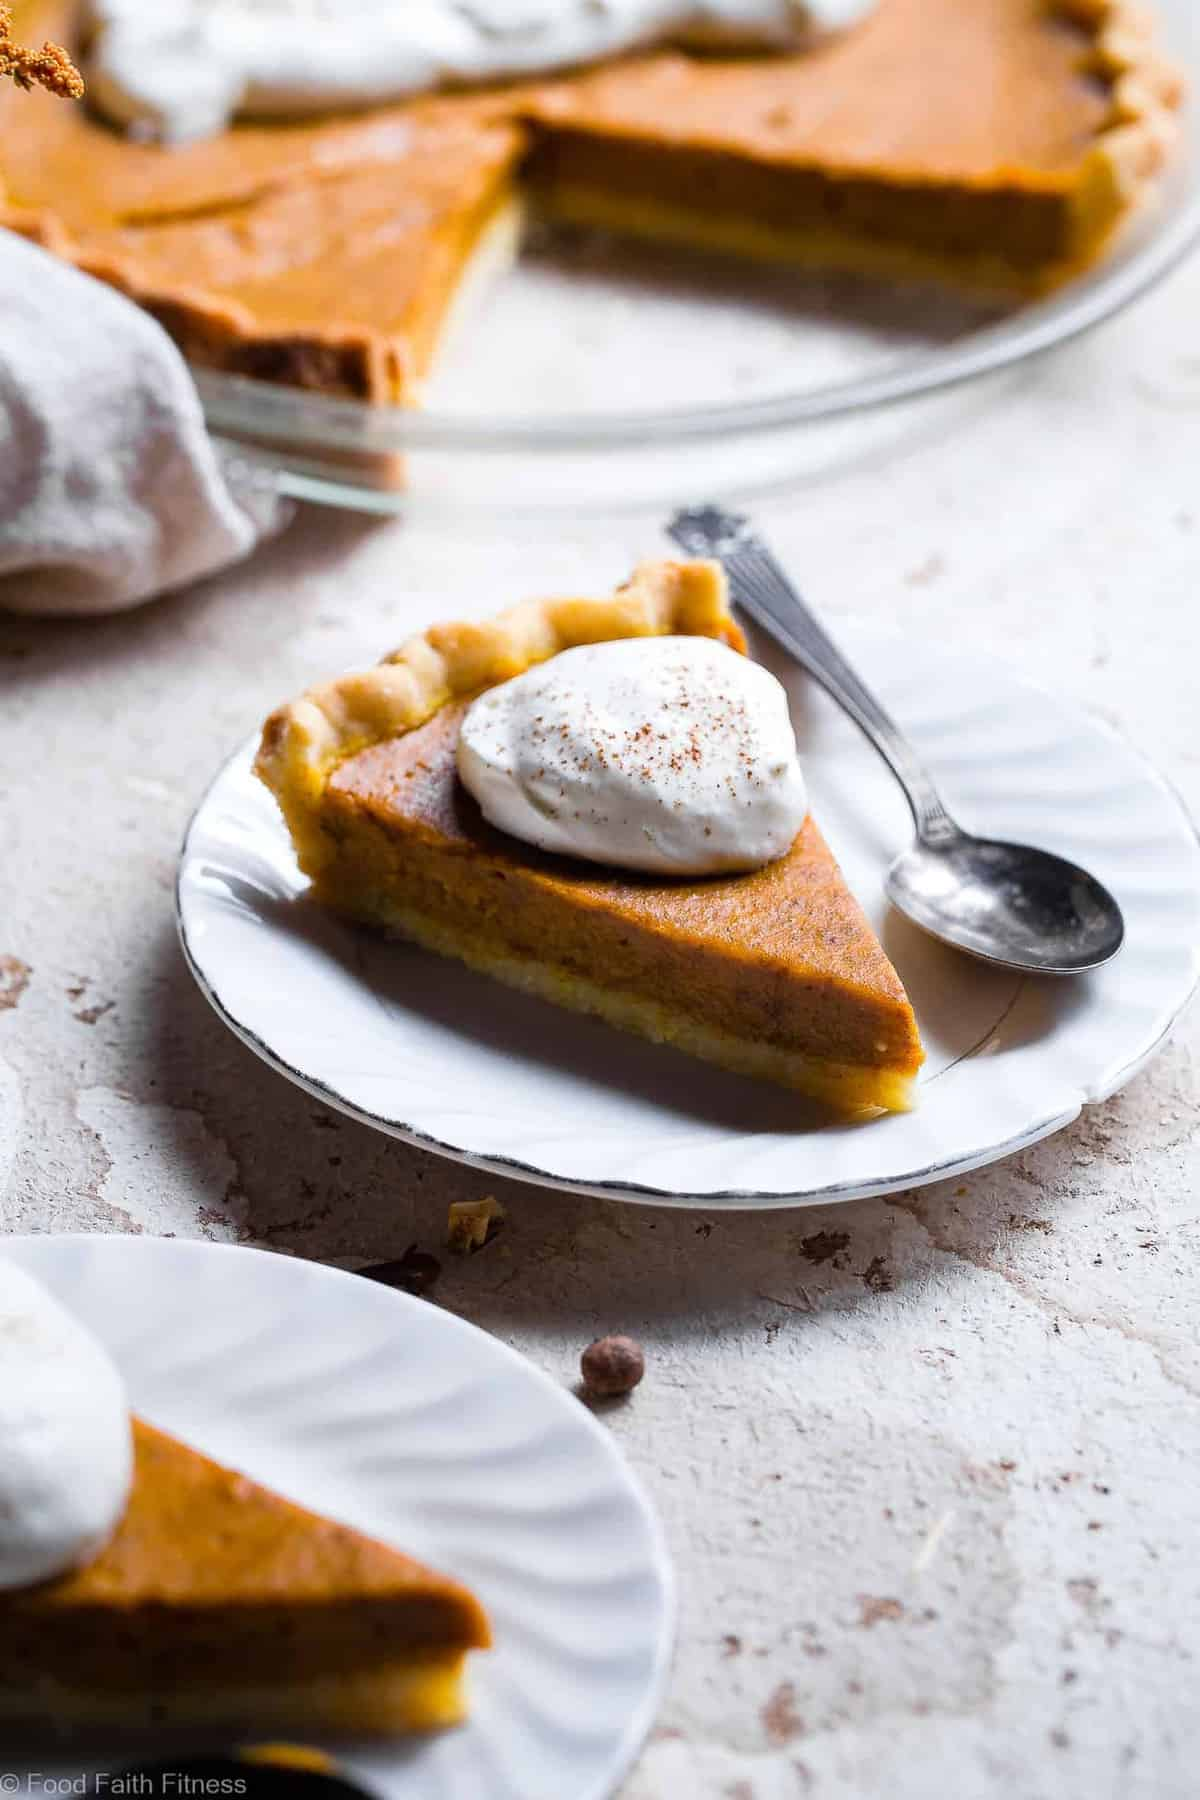 The BEST Paleo Low Carb Sugar Free Pumpkin Pie - This paleo pumpkin pie is SO delicious, you will never know it's dairy and gluten free and only 200 calories a slice! Everyone will want this recipe! | #Foodfaithfitness